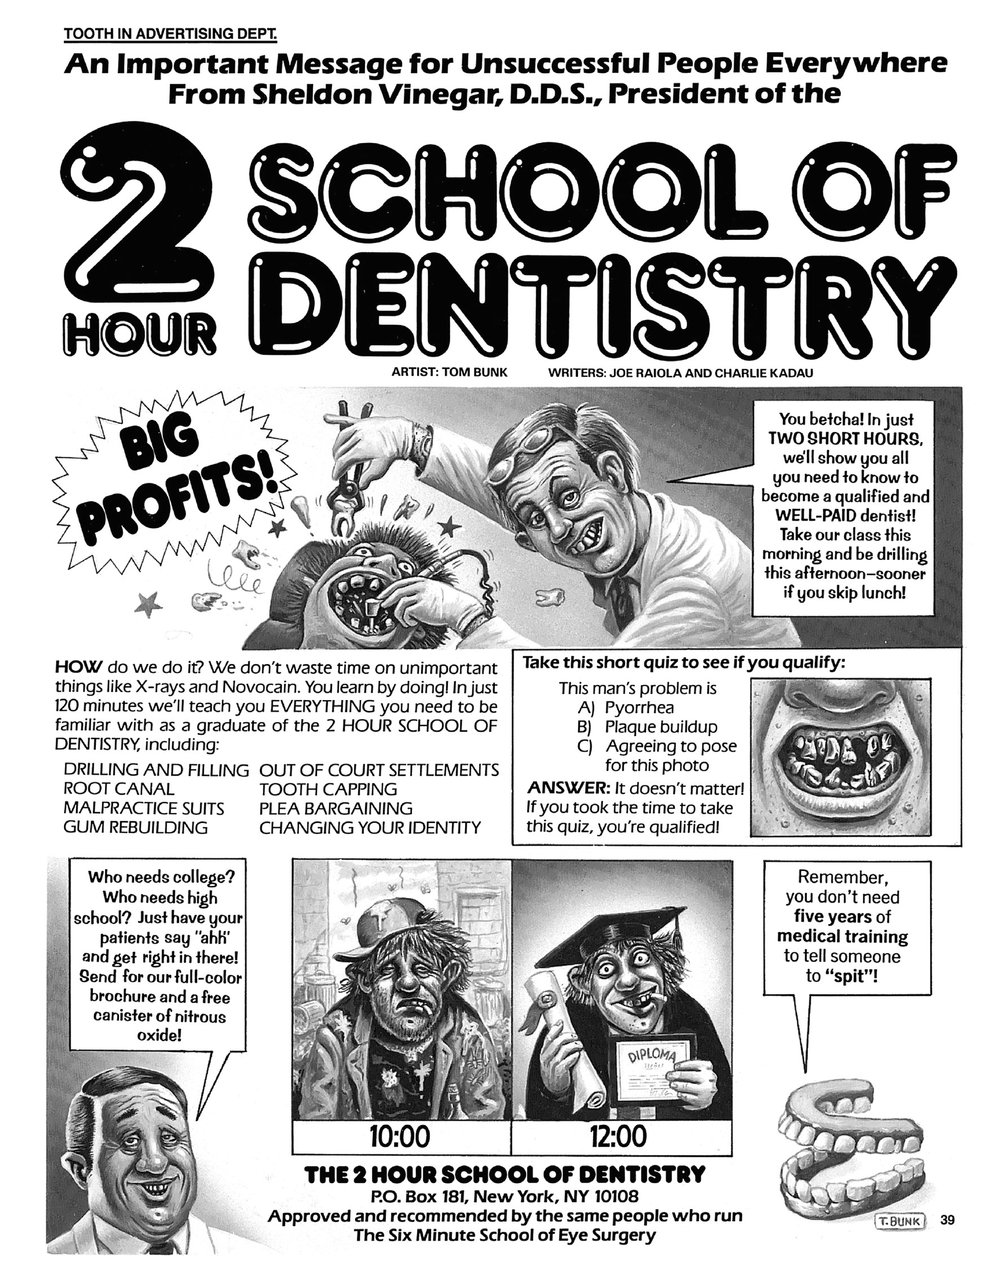 School of Dentistry.jpg